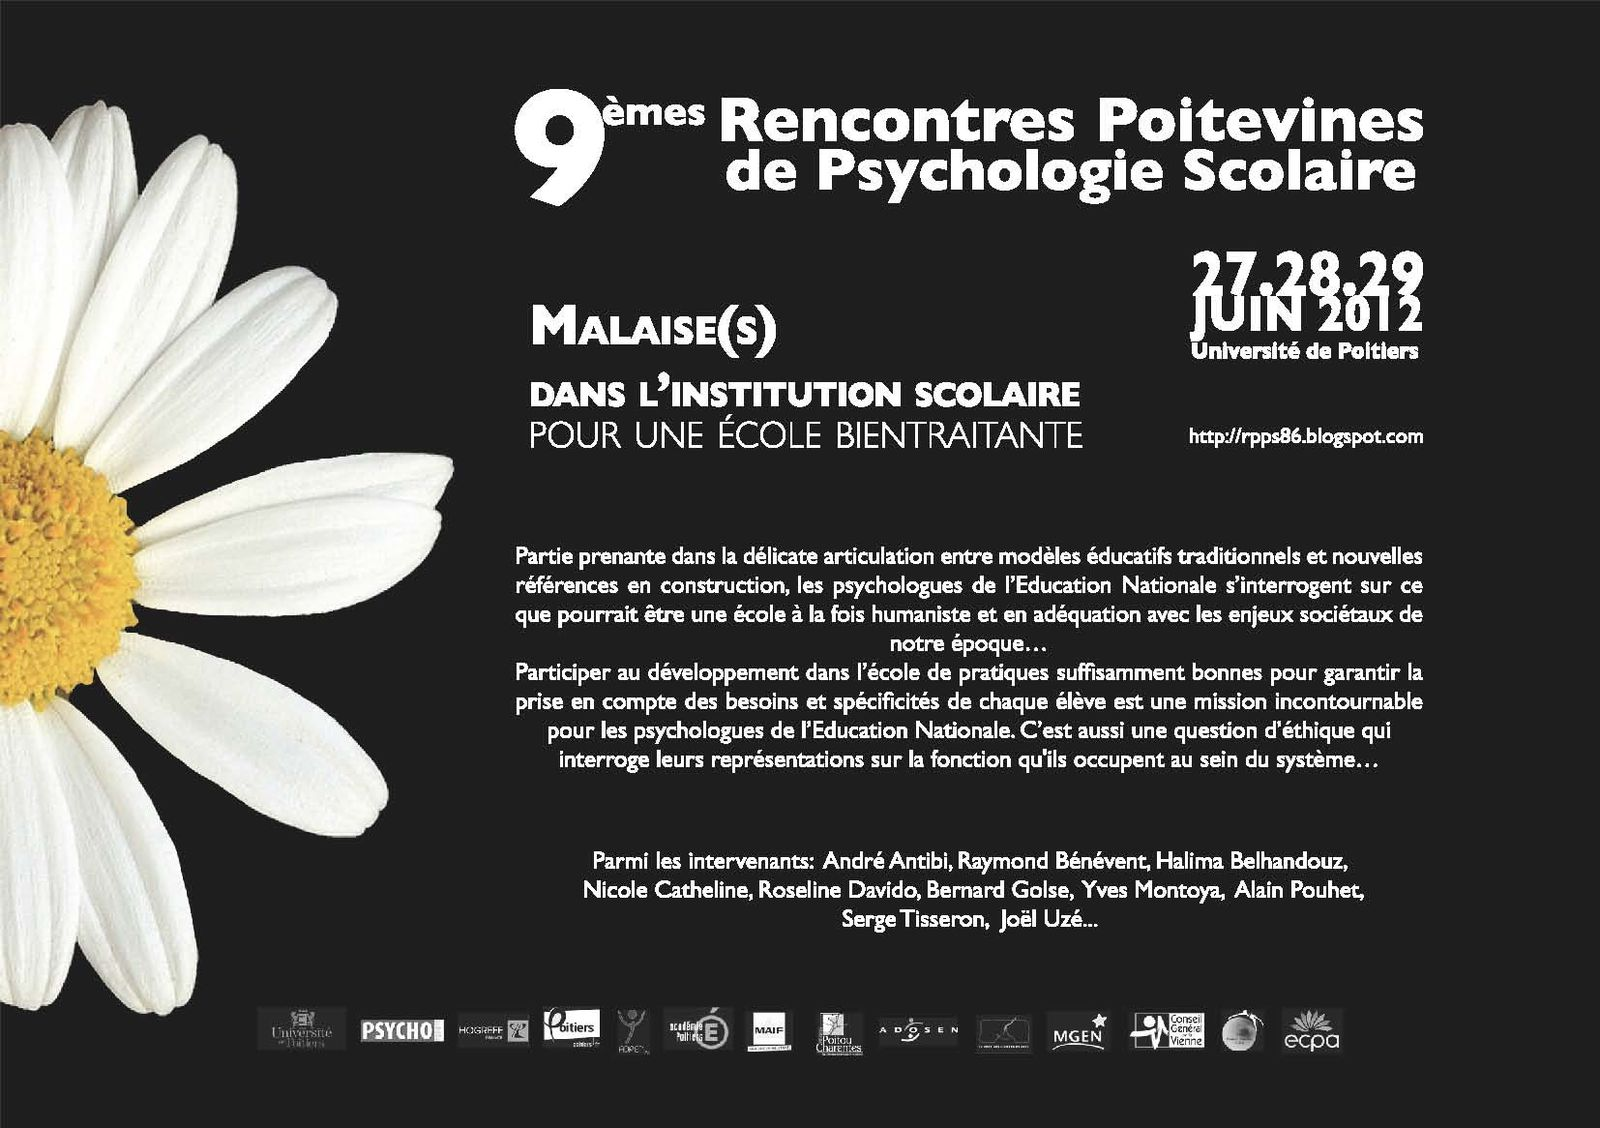 Autorisation rencontre psychologue scolaire